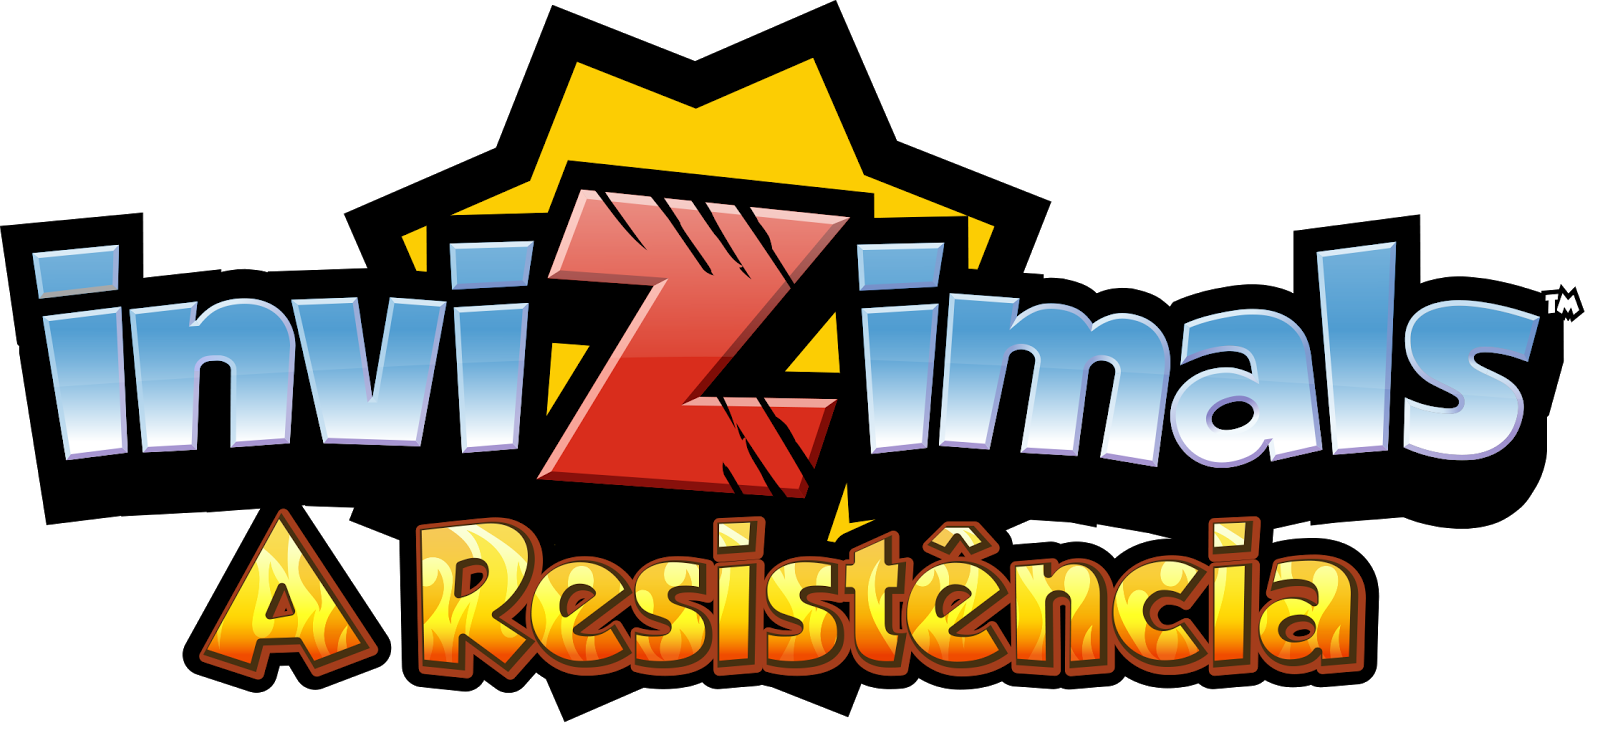 http://psgamespower.blogspot.com/2014/10/invizimals-resistencia-alianca-regressa.html